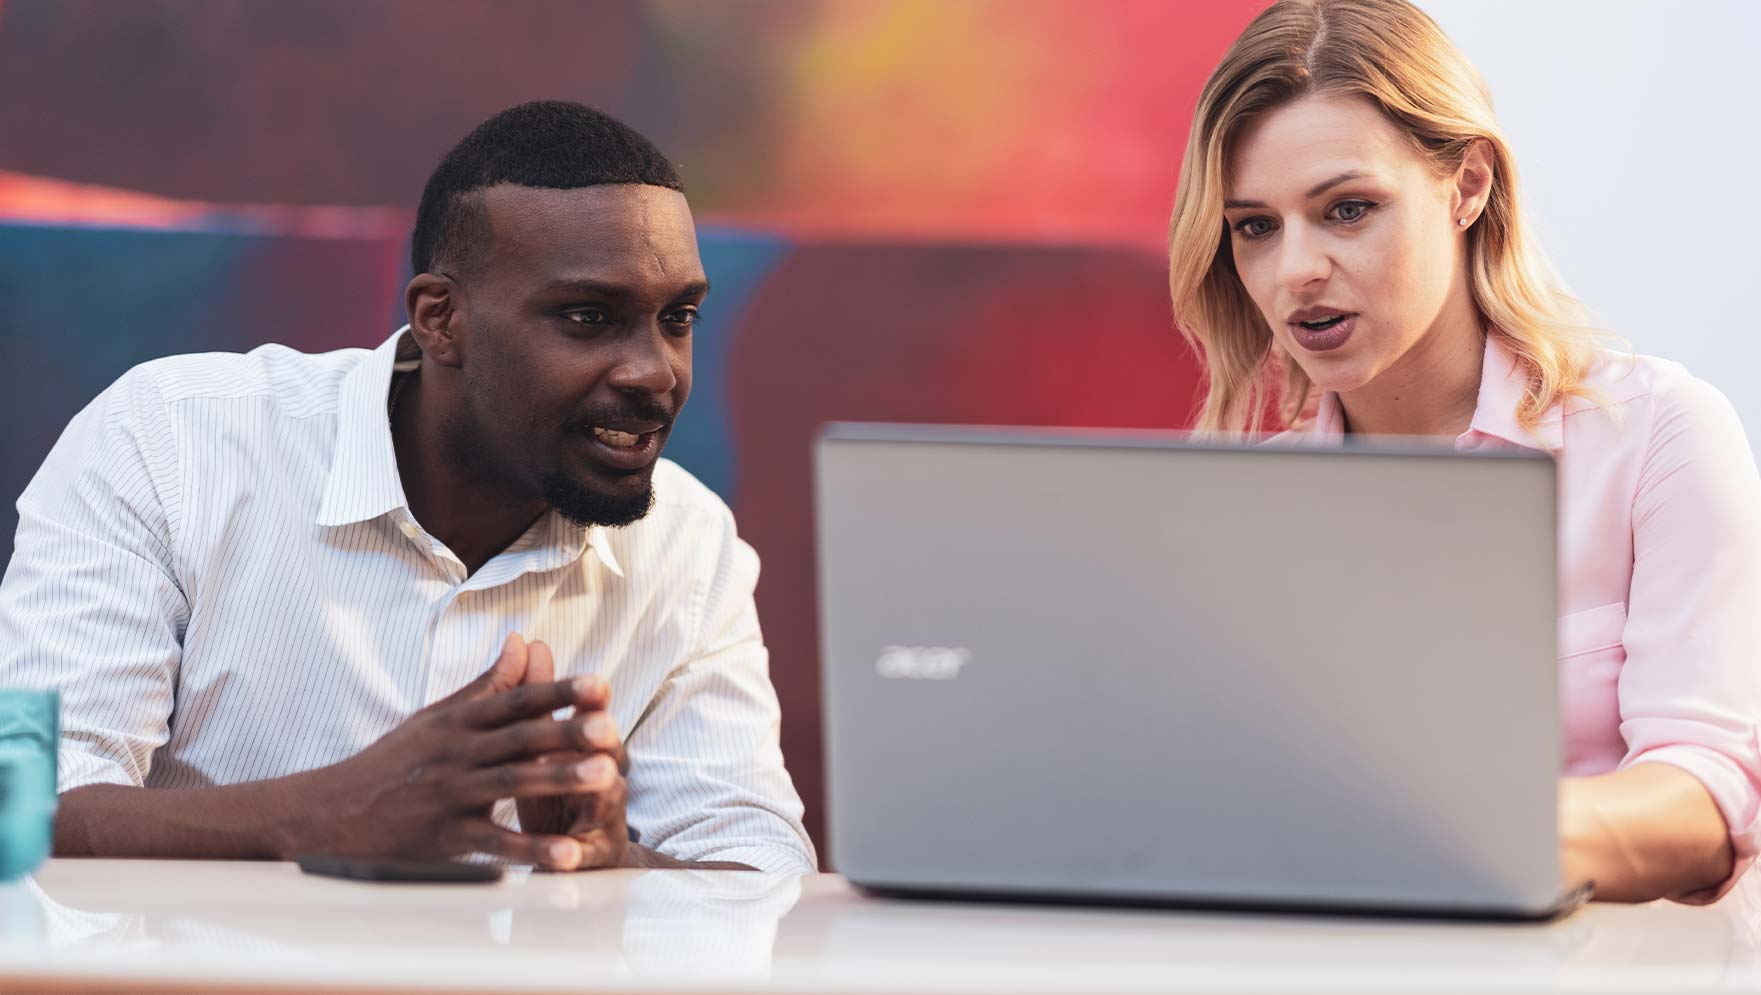 Man and woman discussing work displayed on laptop